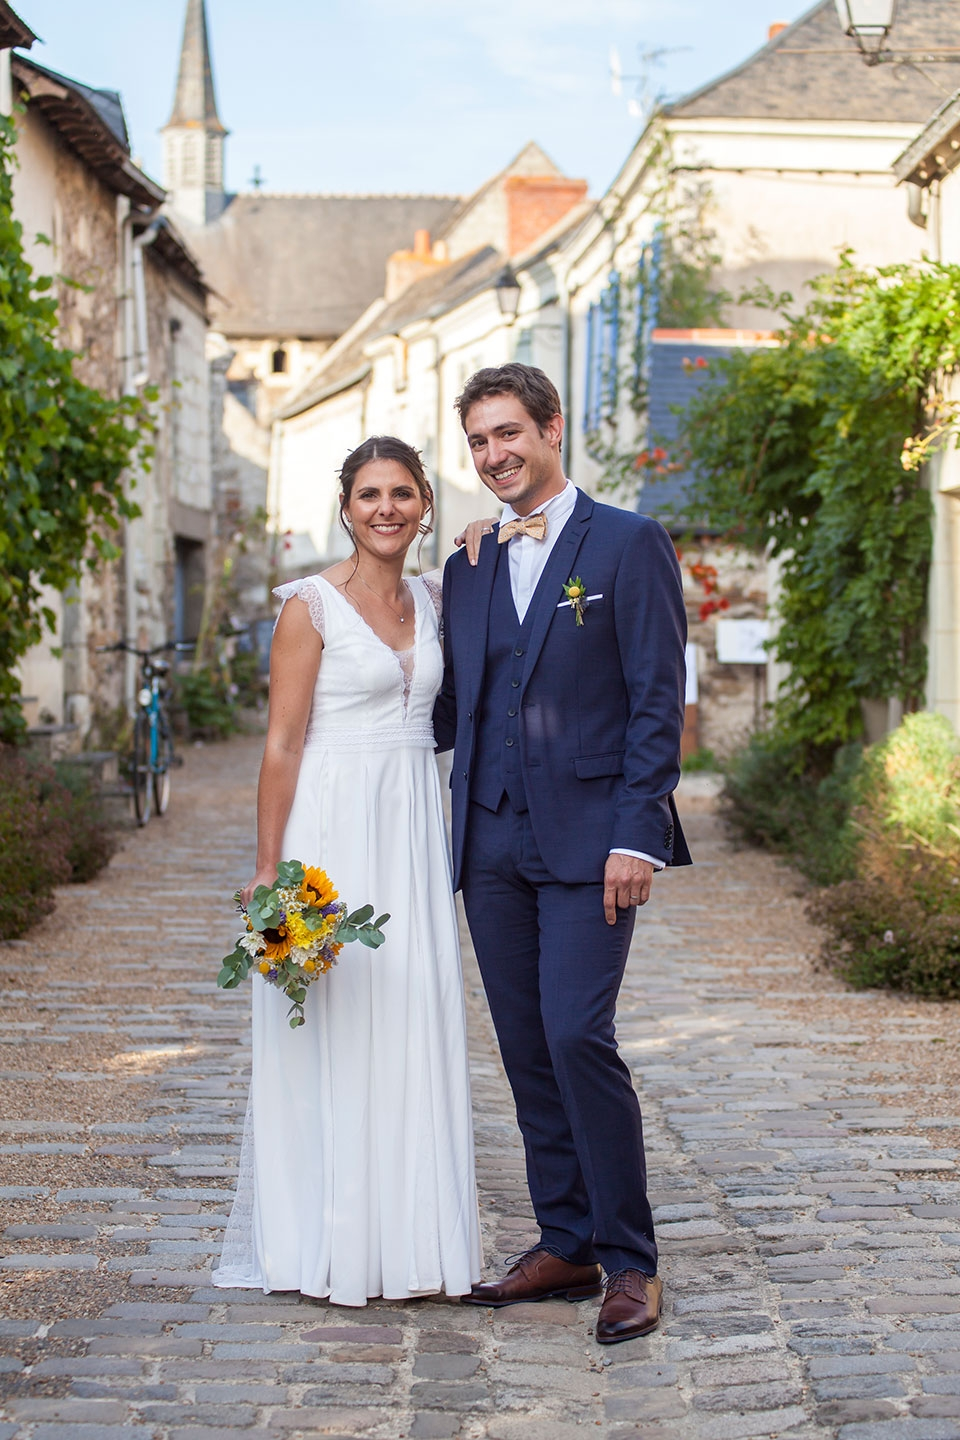 particuliers-evenements-mariage-oui-elise&quentin-67